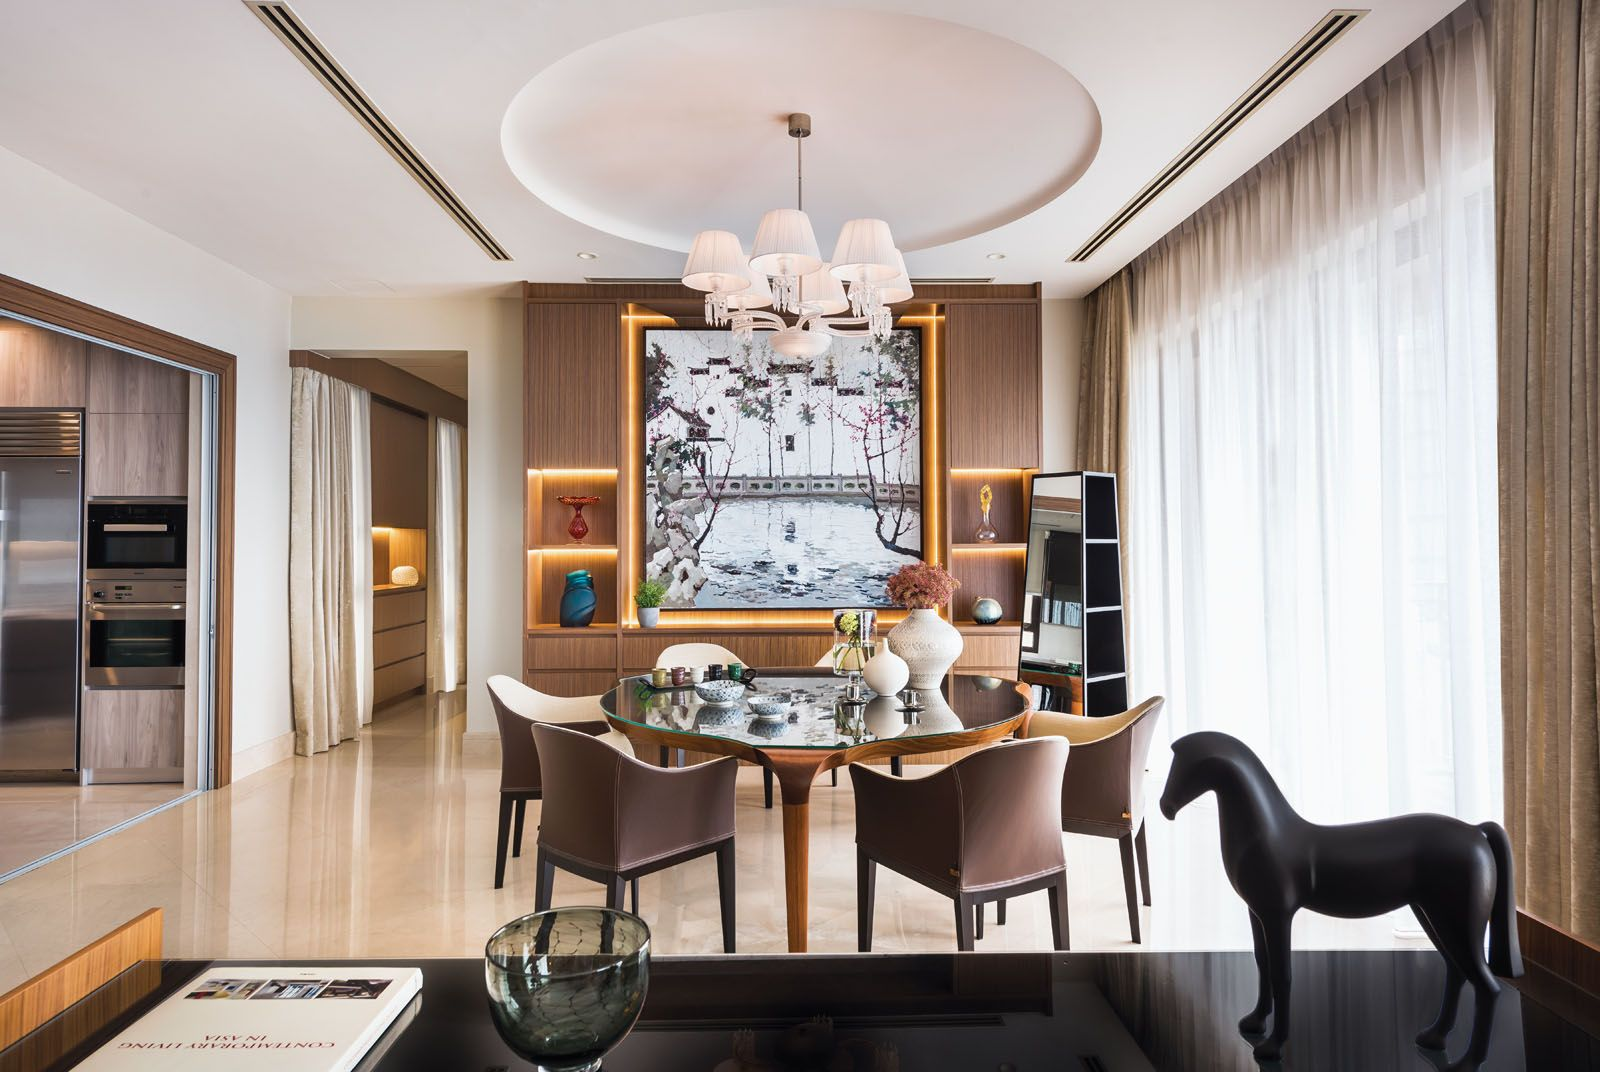 A Baccarat crystal chandelier floats above the dining area